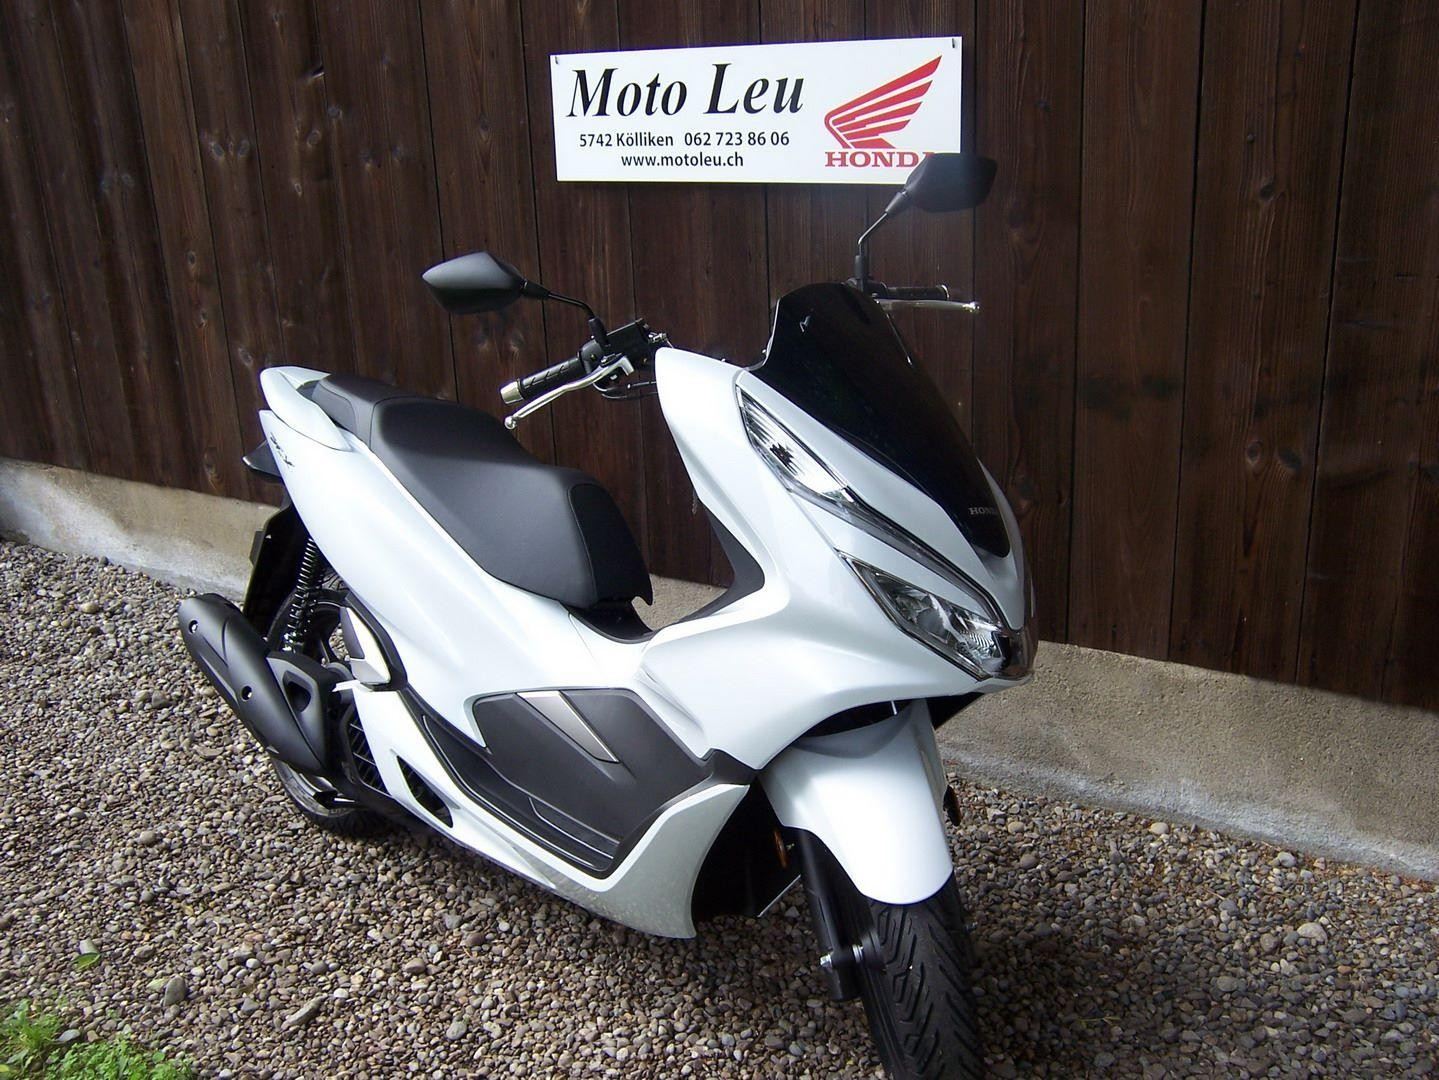 Buy Motorbike New Vehiclebike Honda Pcx Ww 125 Ex2 Abs Moto Leu